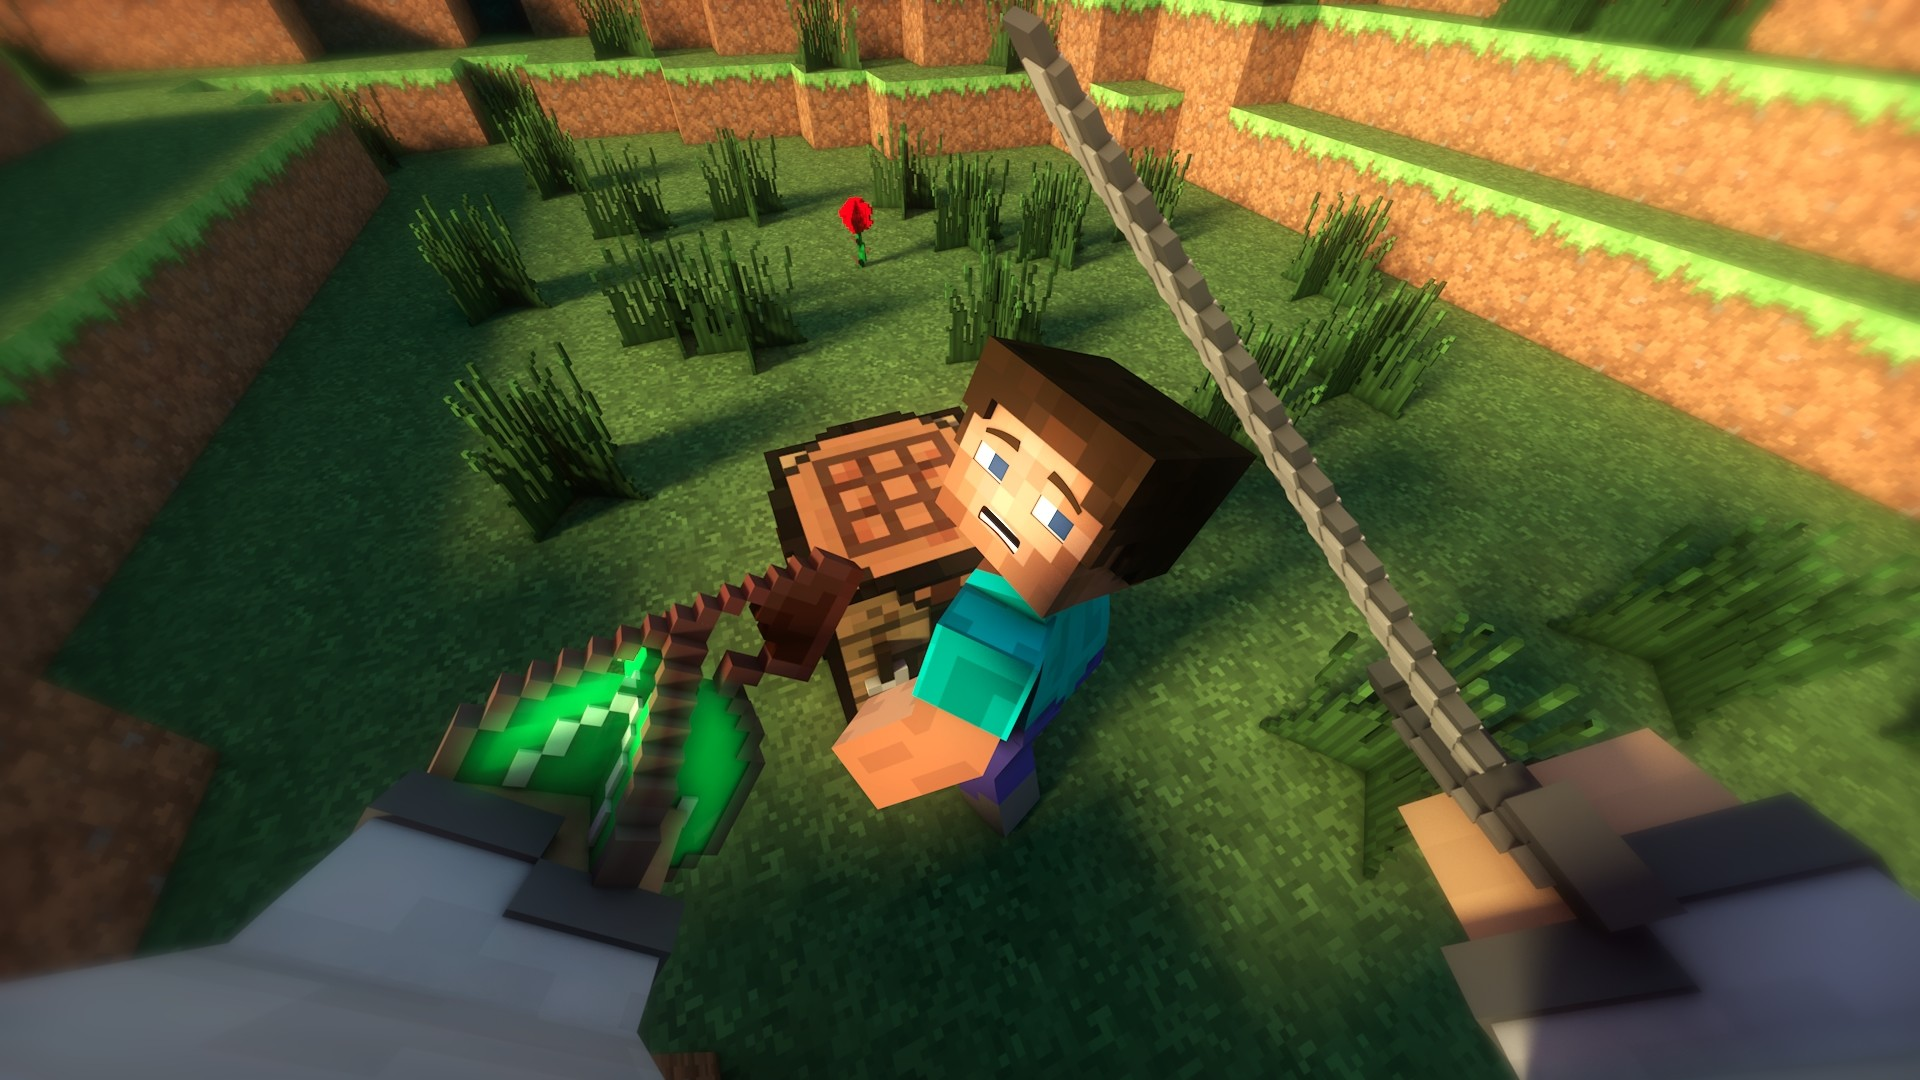 Must see Wallpaper Minecraft Cellphone - 1135325-minecraft-pc-wallpapers-1920x1080-cell-phone  Perfect Image Reference_274156.jpg